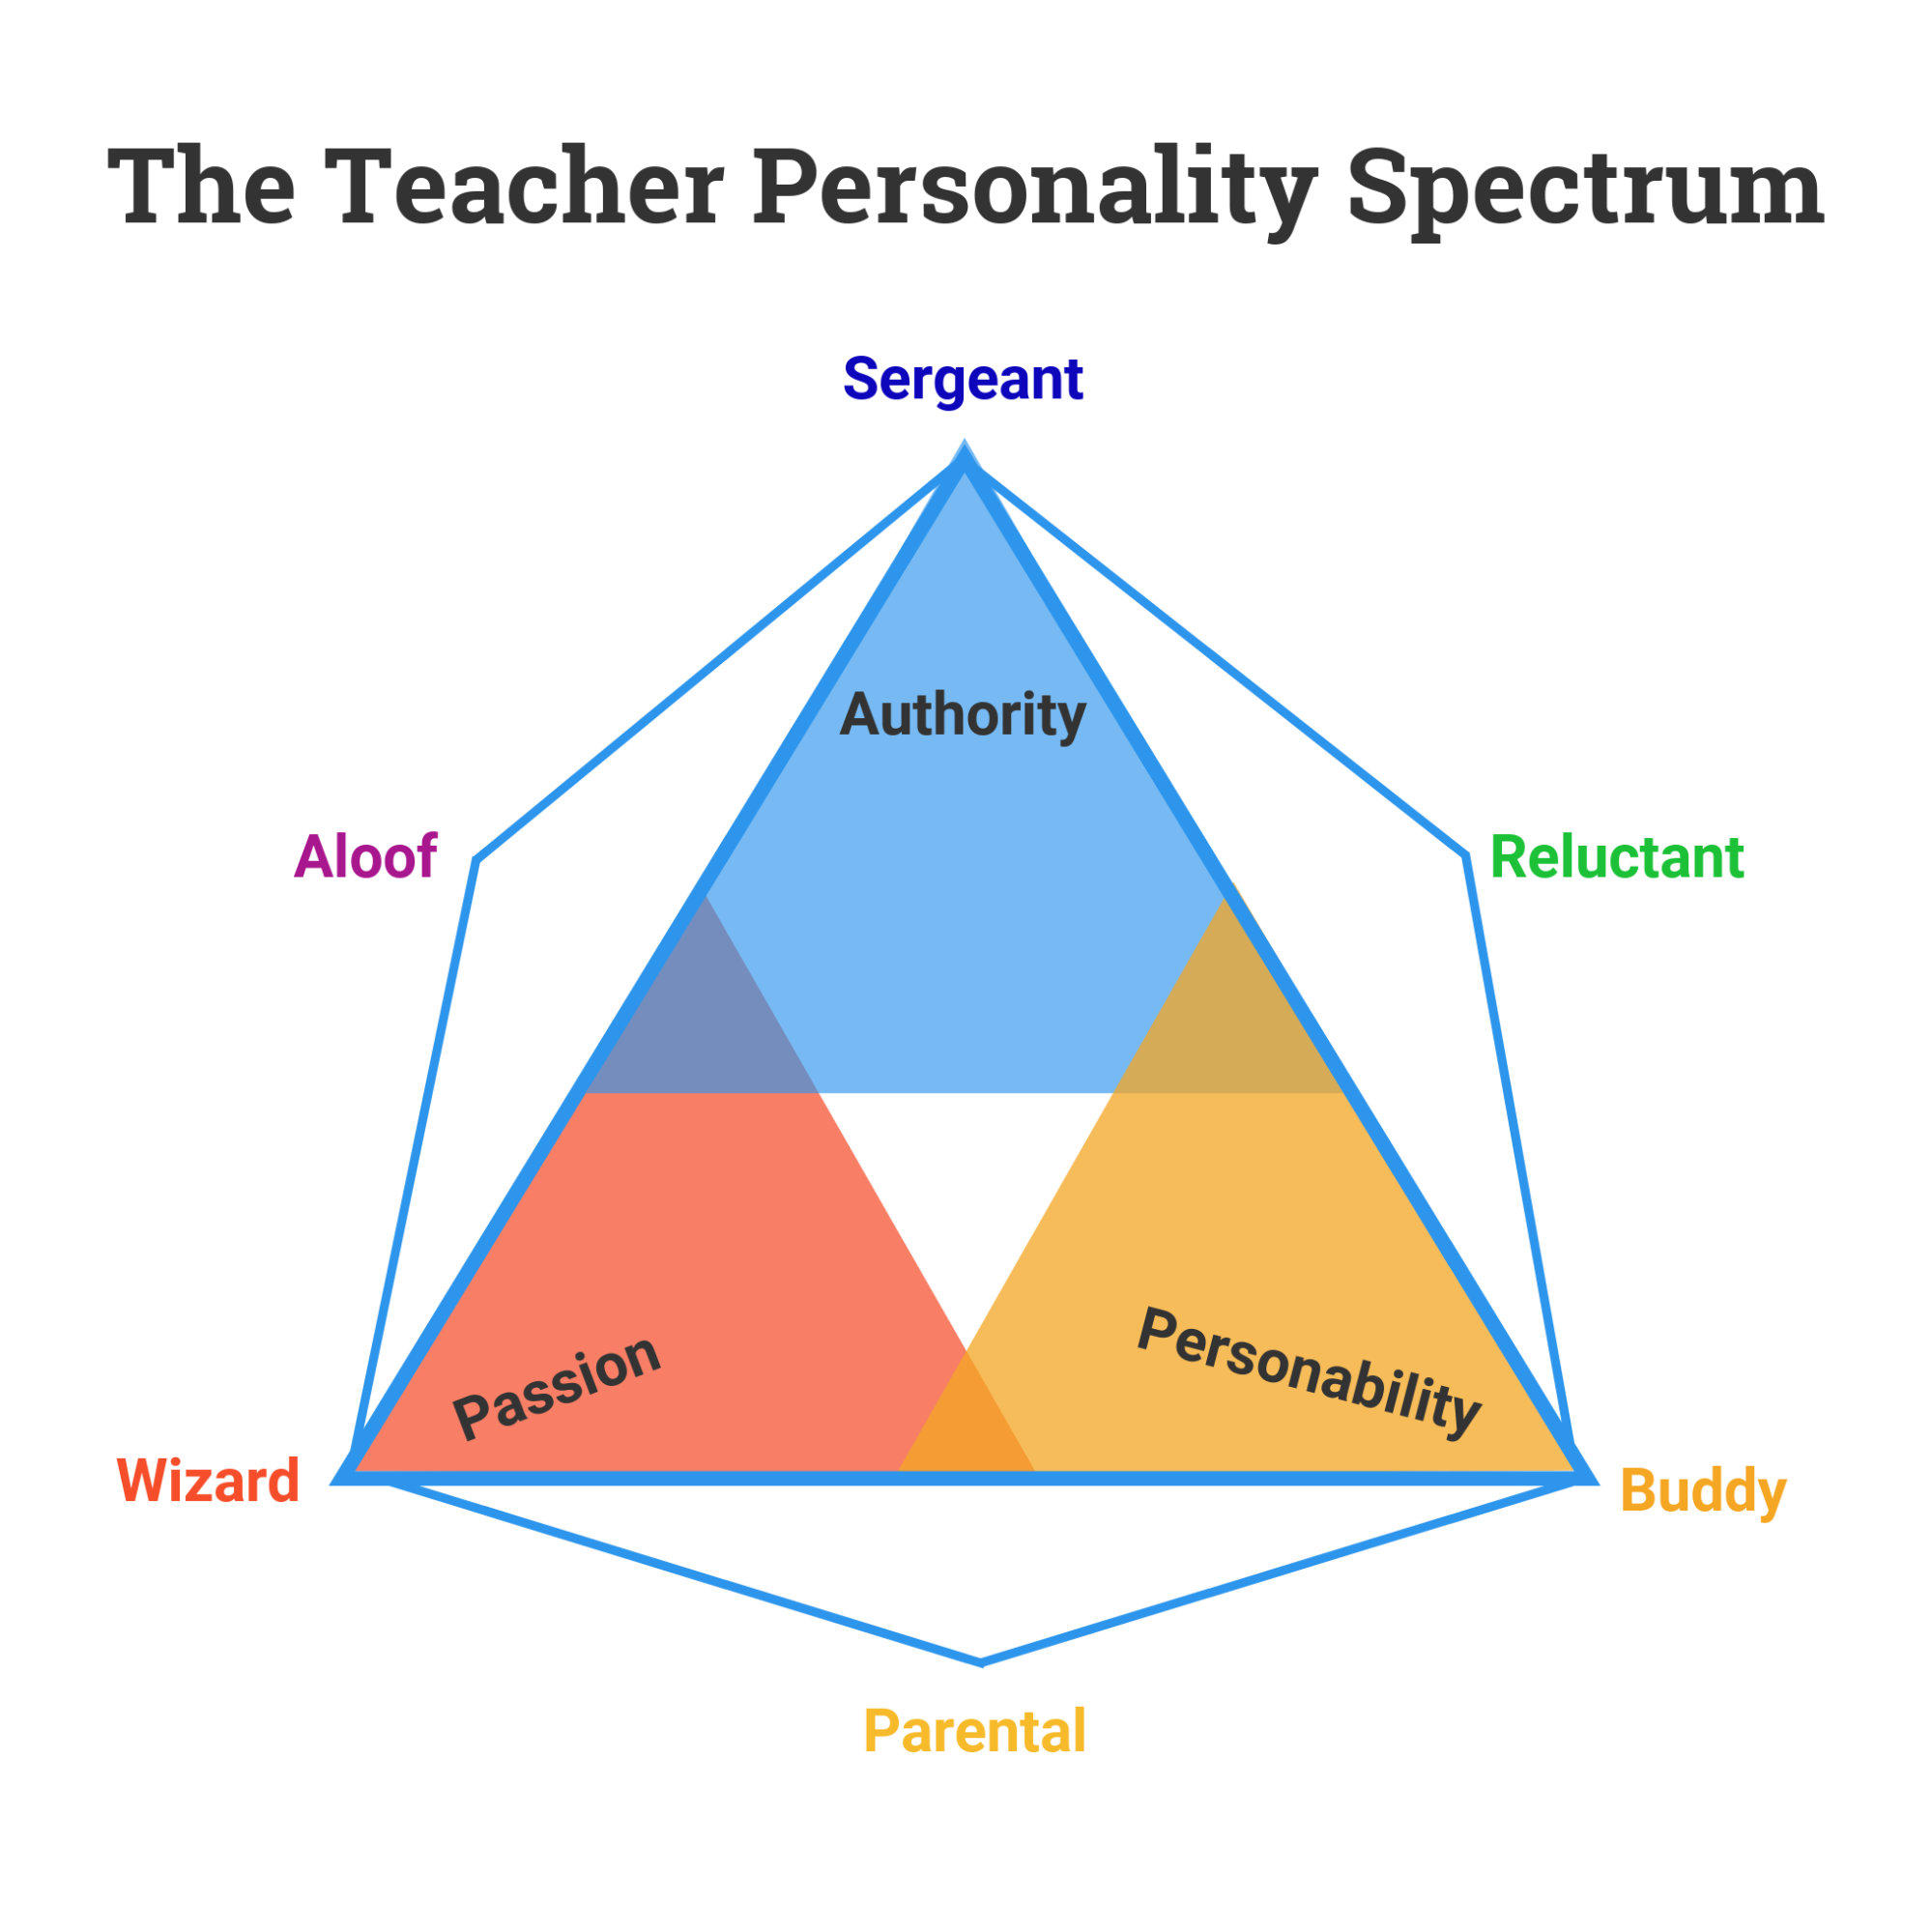 graphic regarding 4 Color Personality Test Printable known as What Is Your Trainer Temperament Fashion? [INFOGRAPHIC] - Venngage